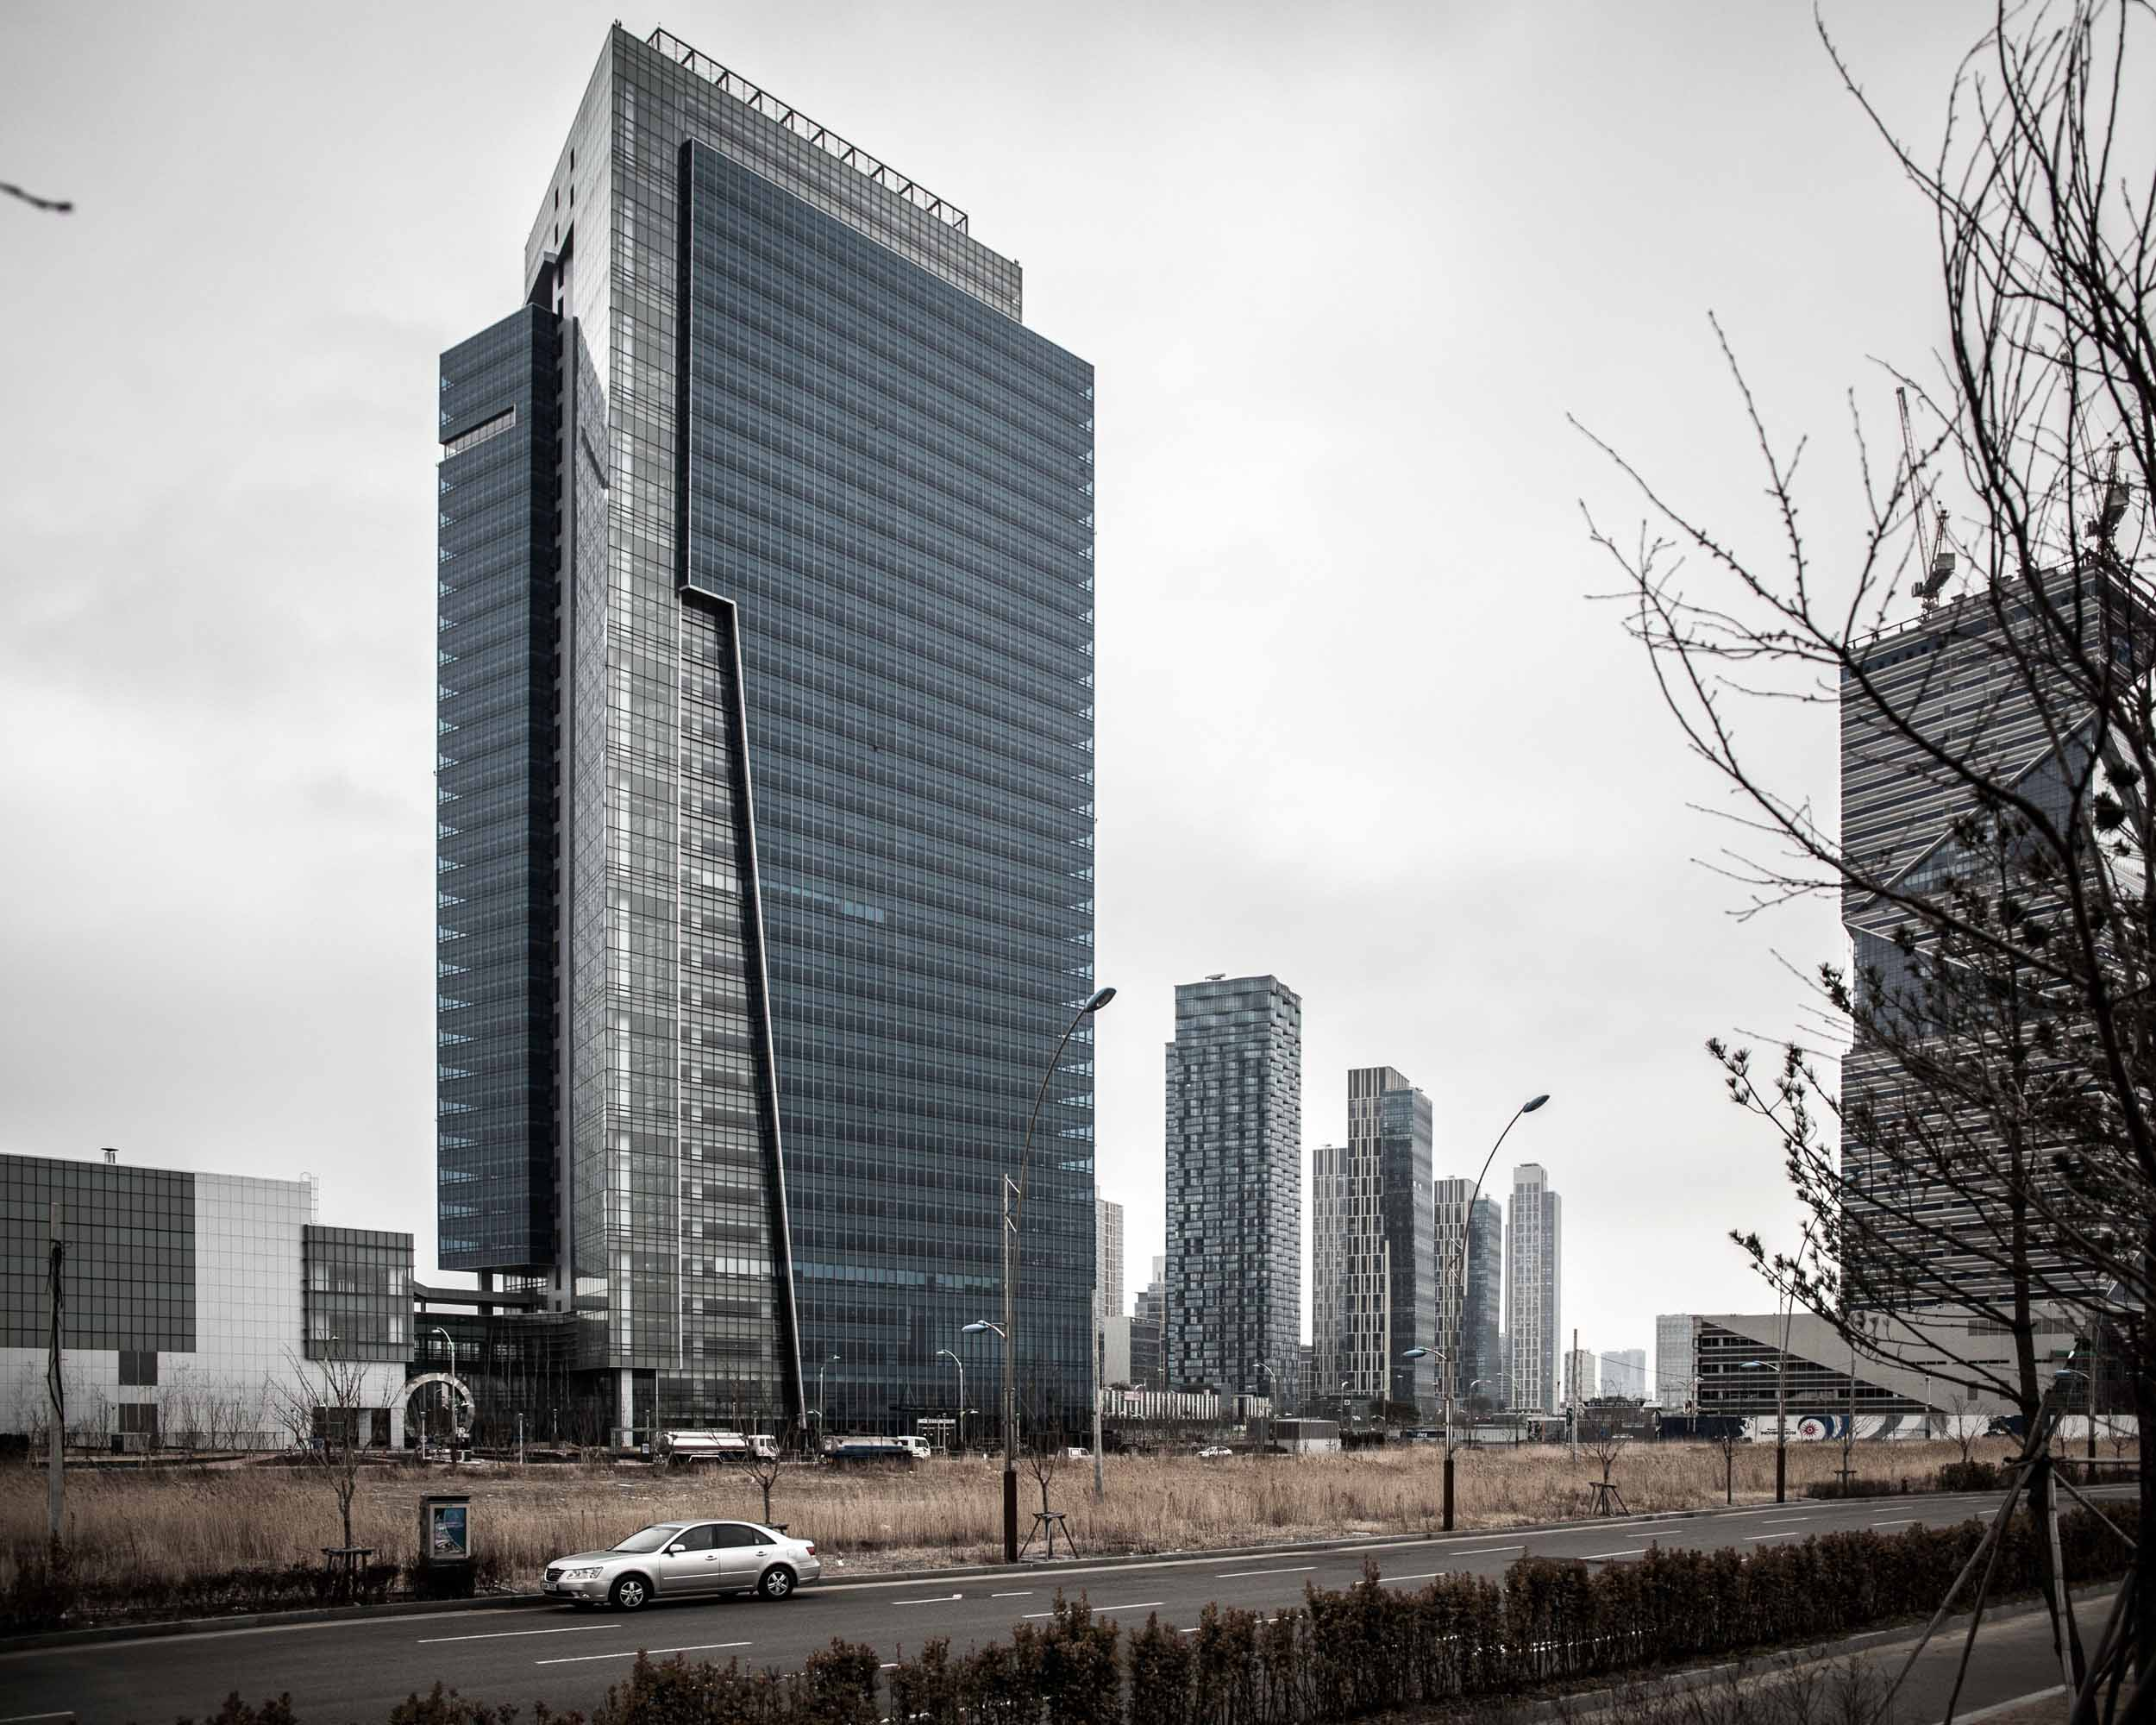 Songdo International Business District (SIBD) is a new Smart City or Ubiquitous City built from scratch on 1,500 acres of reclaimed land along Incheon's waterfront, 40 miles southwest of Seoul, South Korea and connected to Incheon International Airport by a 7.4 mile reinforced concrete highway bridge, called Incheon Bridge. Along with Yeongjong and Cheongna, it is part of the Incheon Free Economic Zone. This 10-year development project is estimated to cost in excess of $40 billion, making it one of the most expensive development projects ever undertaken and it is the largest private real estate development in history. By its completion date in 2015, the district is planned to contain 80,000 apartments, 50,000,000 square feet of office space and 10,000,000 square feet of retail space. The 65-floor Northeast Asia Trade Tower became South Korea's tallest building. The plan was designed by the New York office of Kohn Pedersen Fox (KPF).